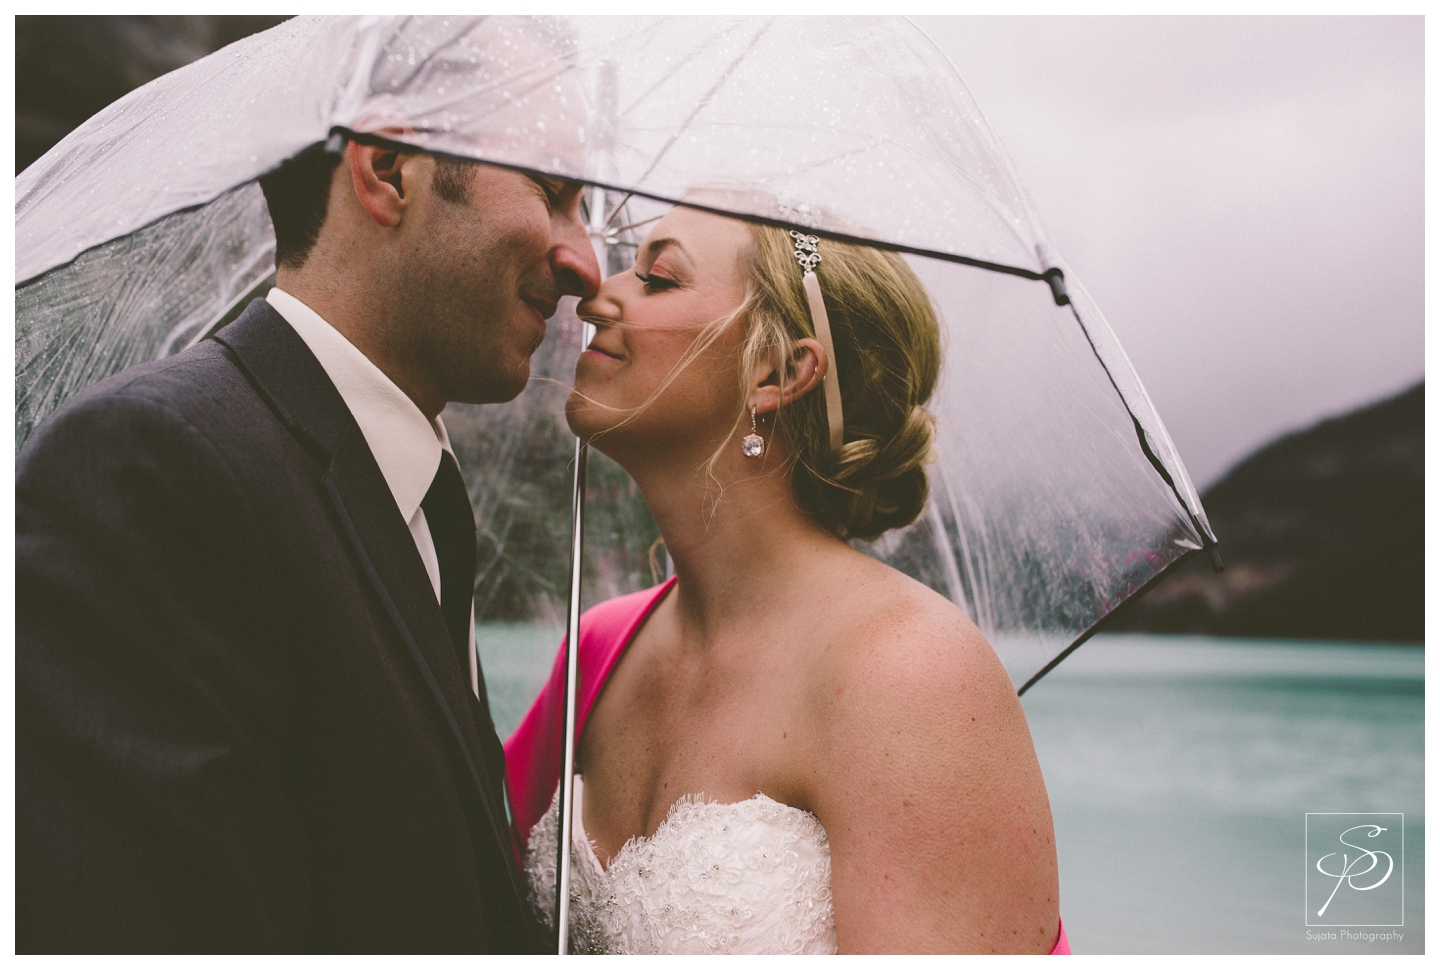 Bride and groom under umbrella in the rain at Lake Louise